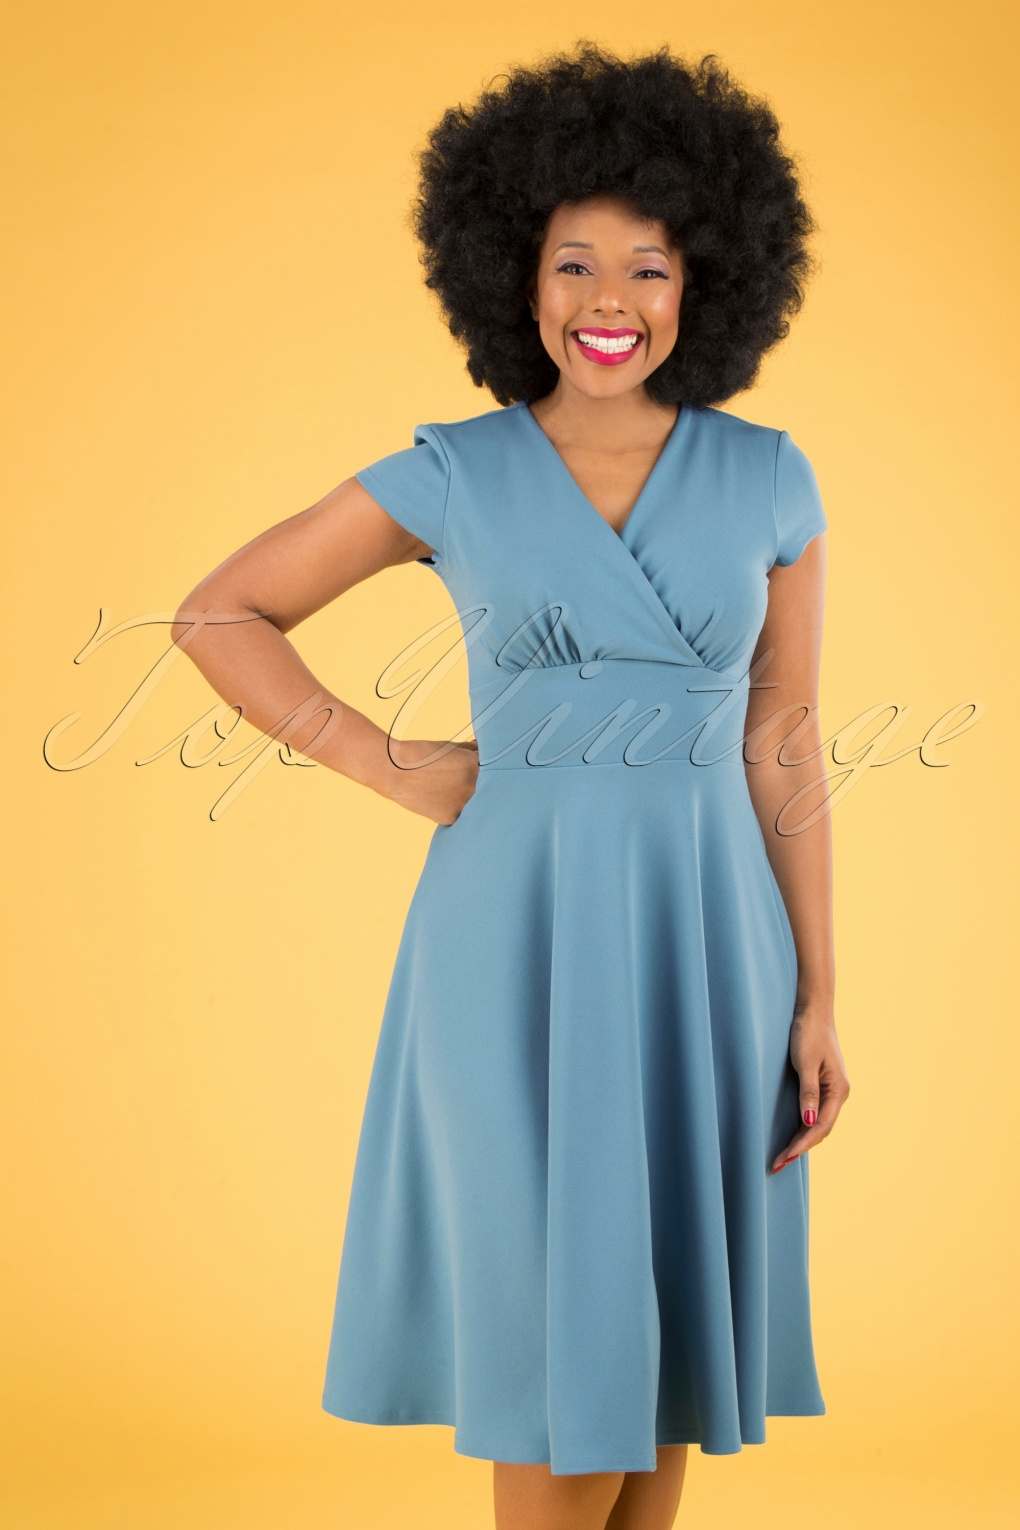 Fifties Dresses : 1950s Style Swing to Wiggle Dresses 50s Addison Swing Dress in Pretty Blue £53.28 AT vintagedancer.com